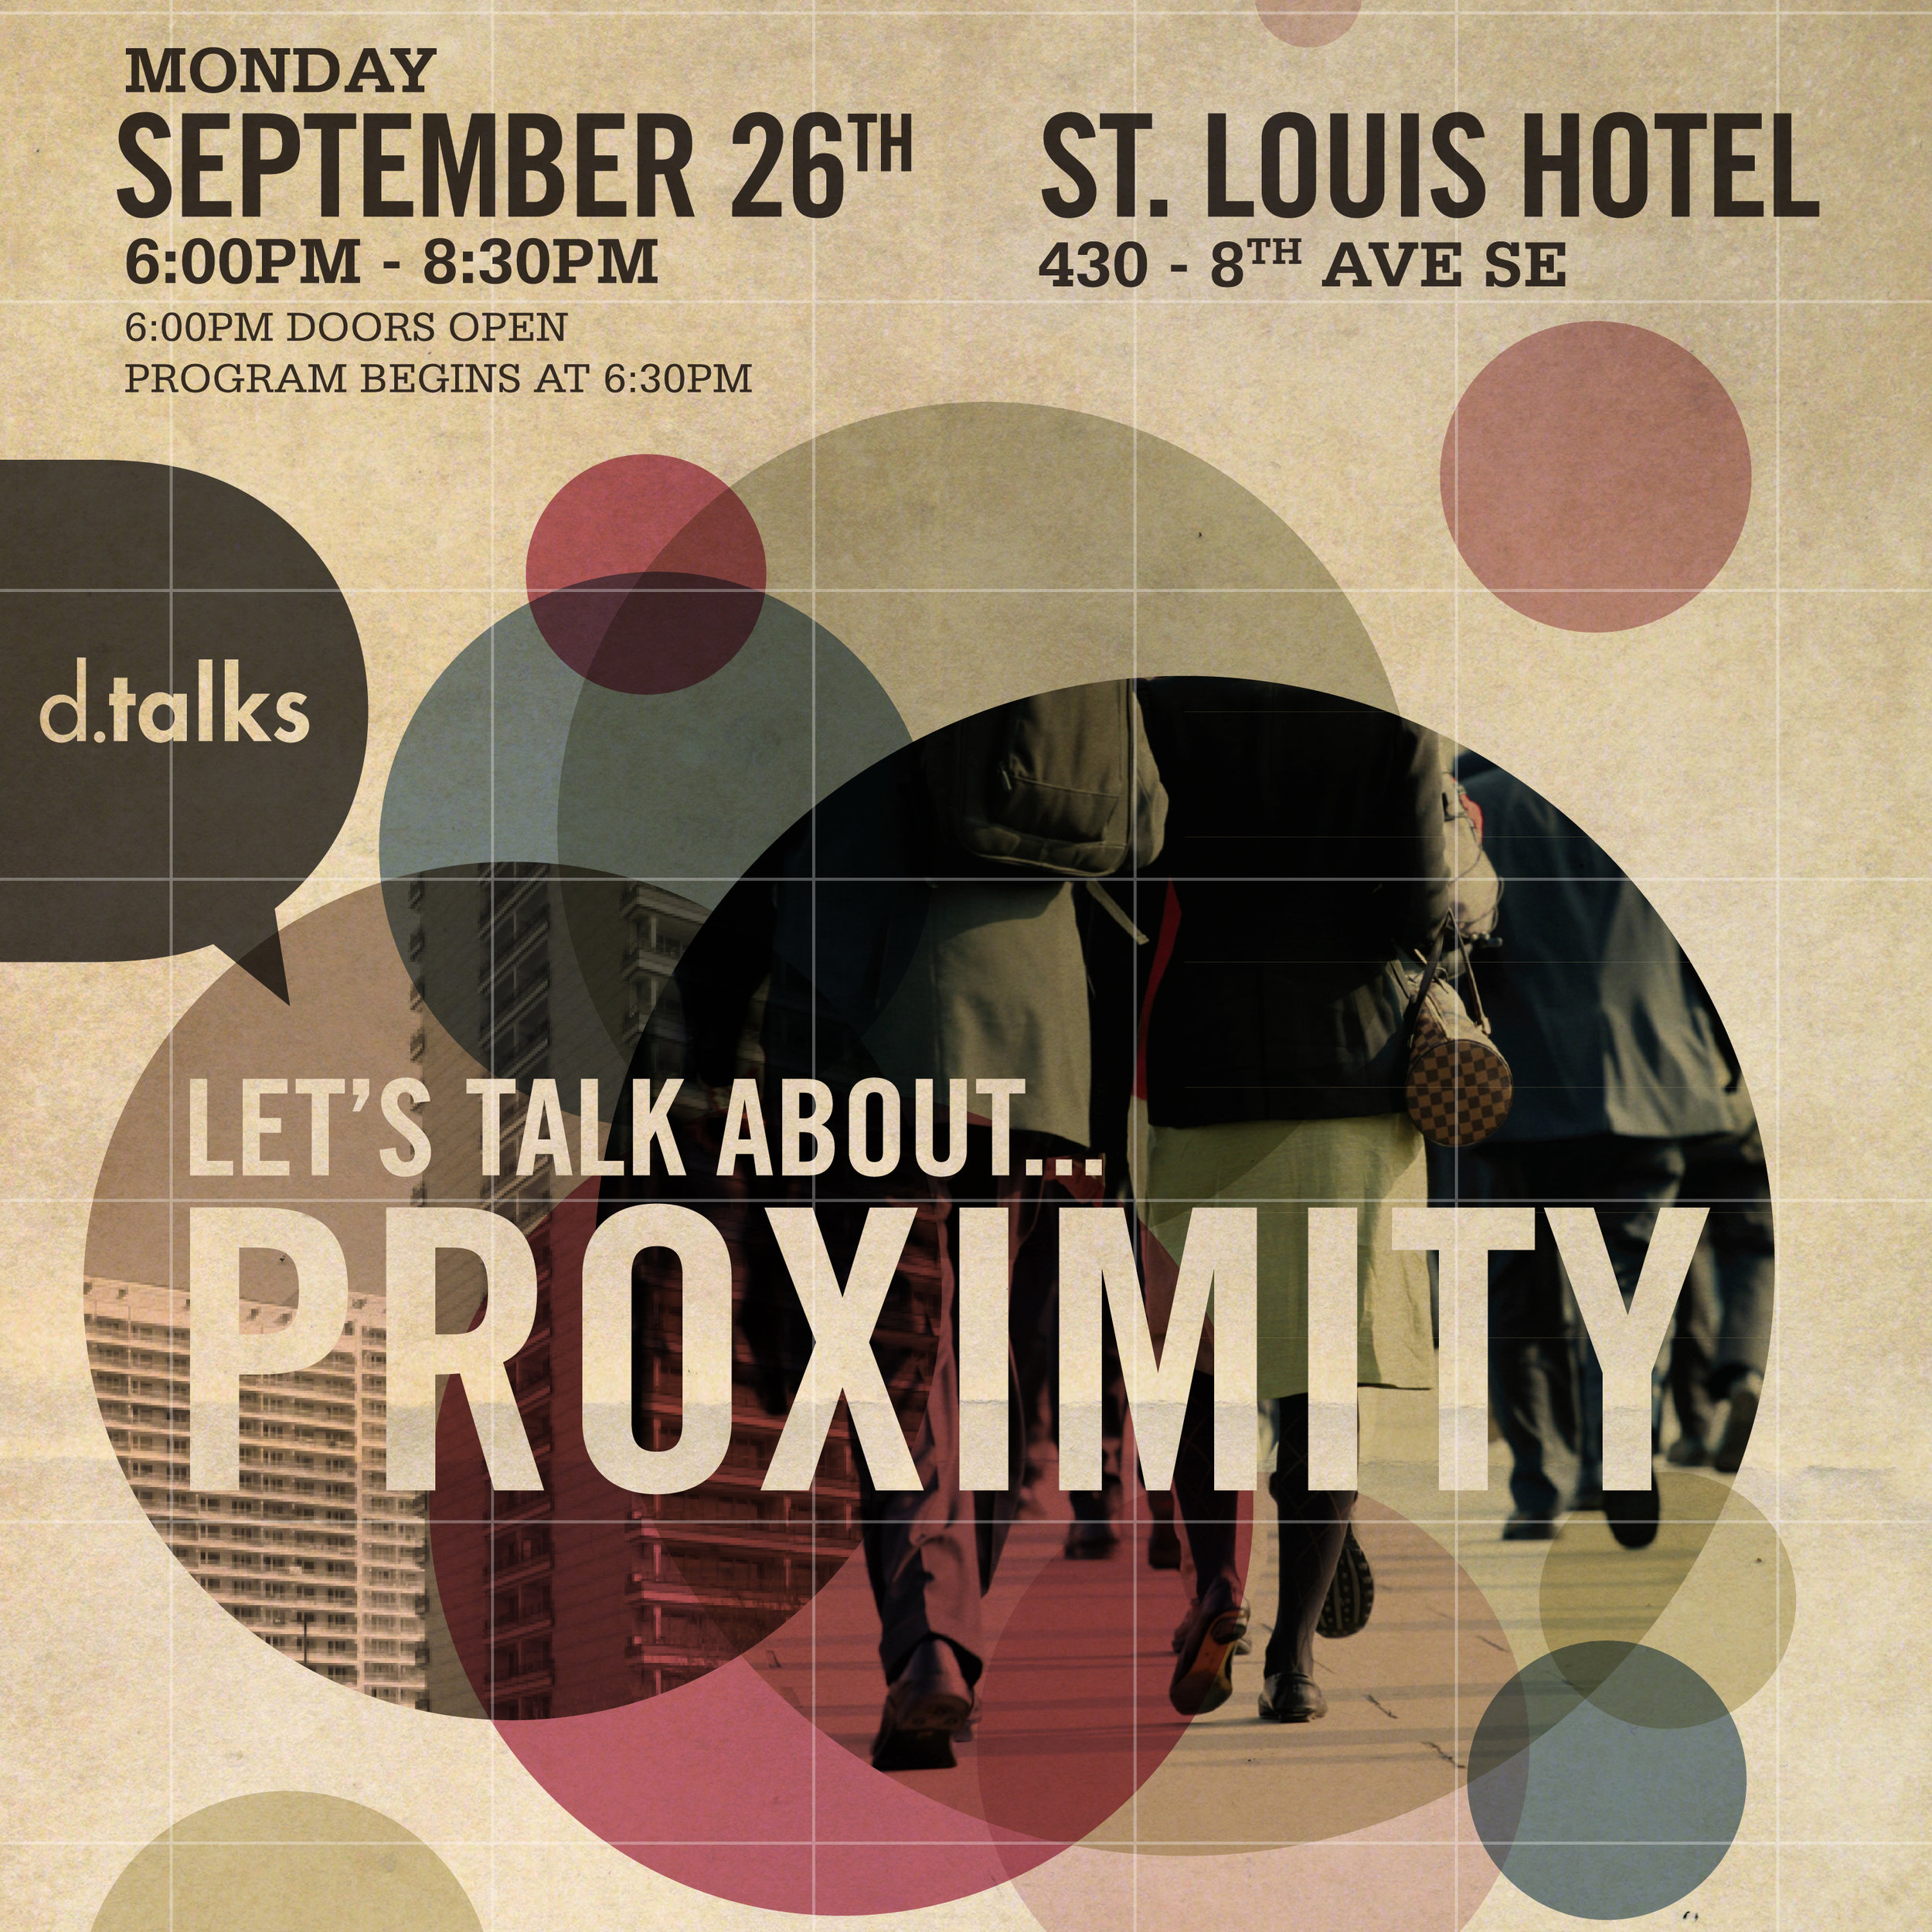 Let's talk about...proximity  (poster: Good Company)